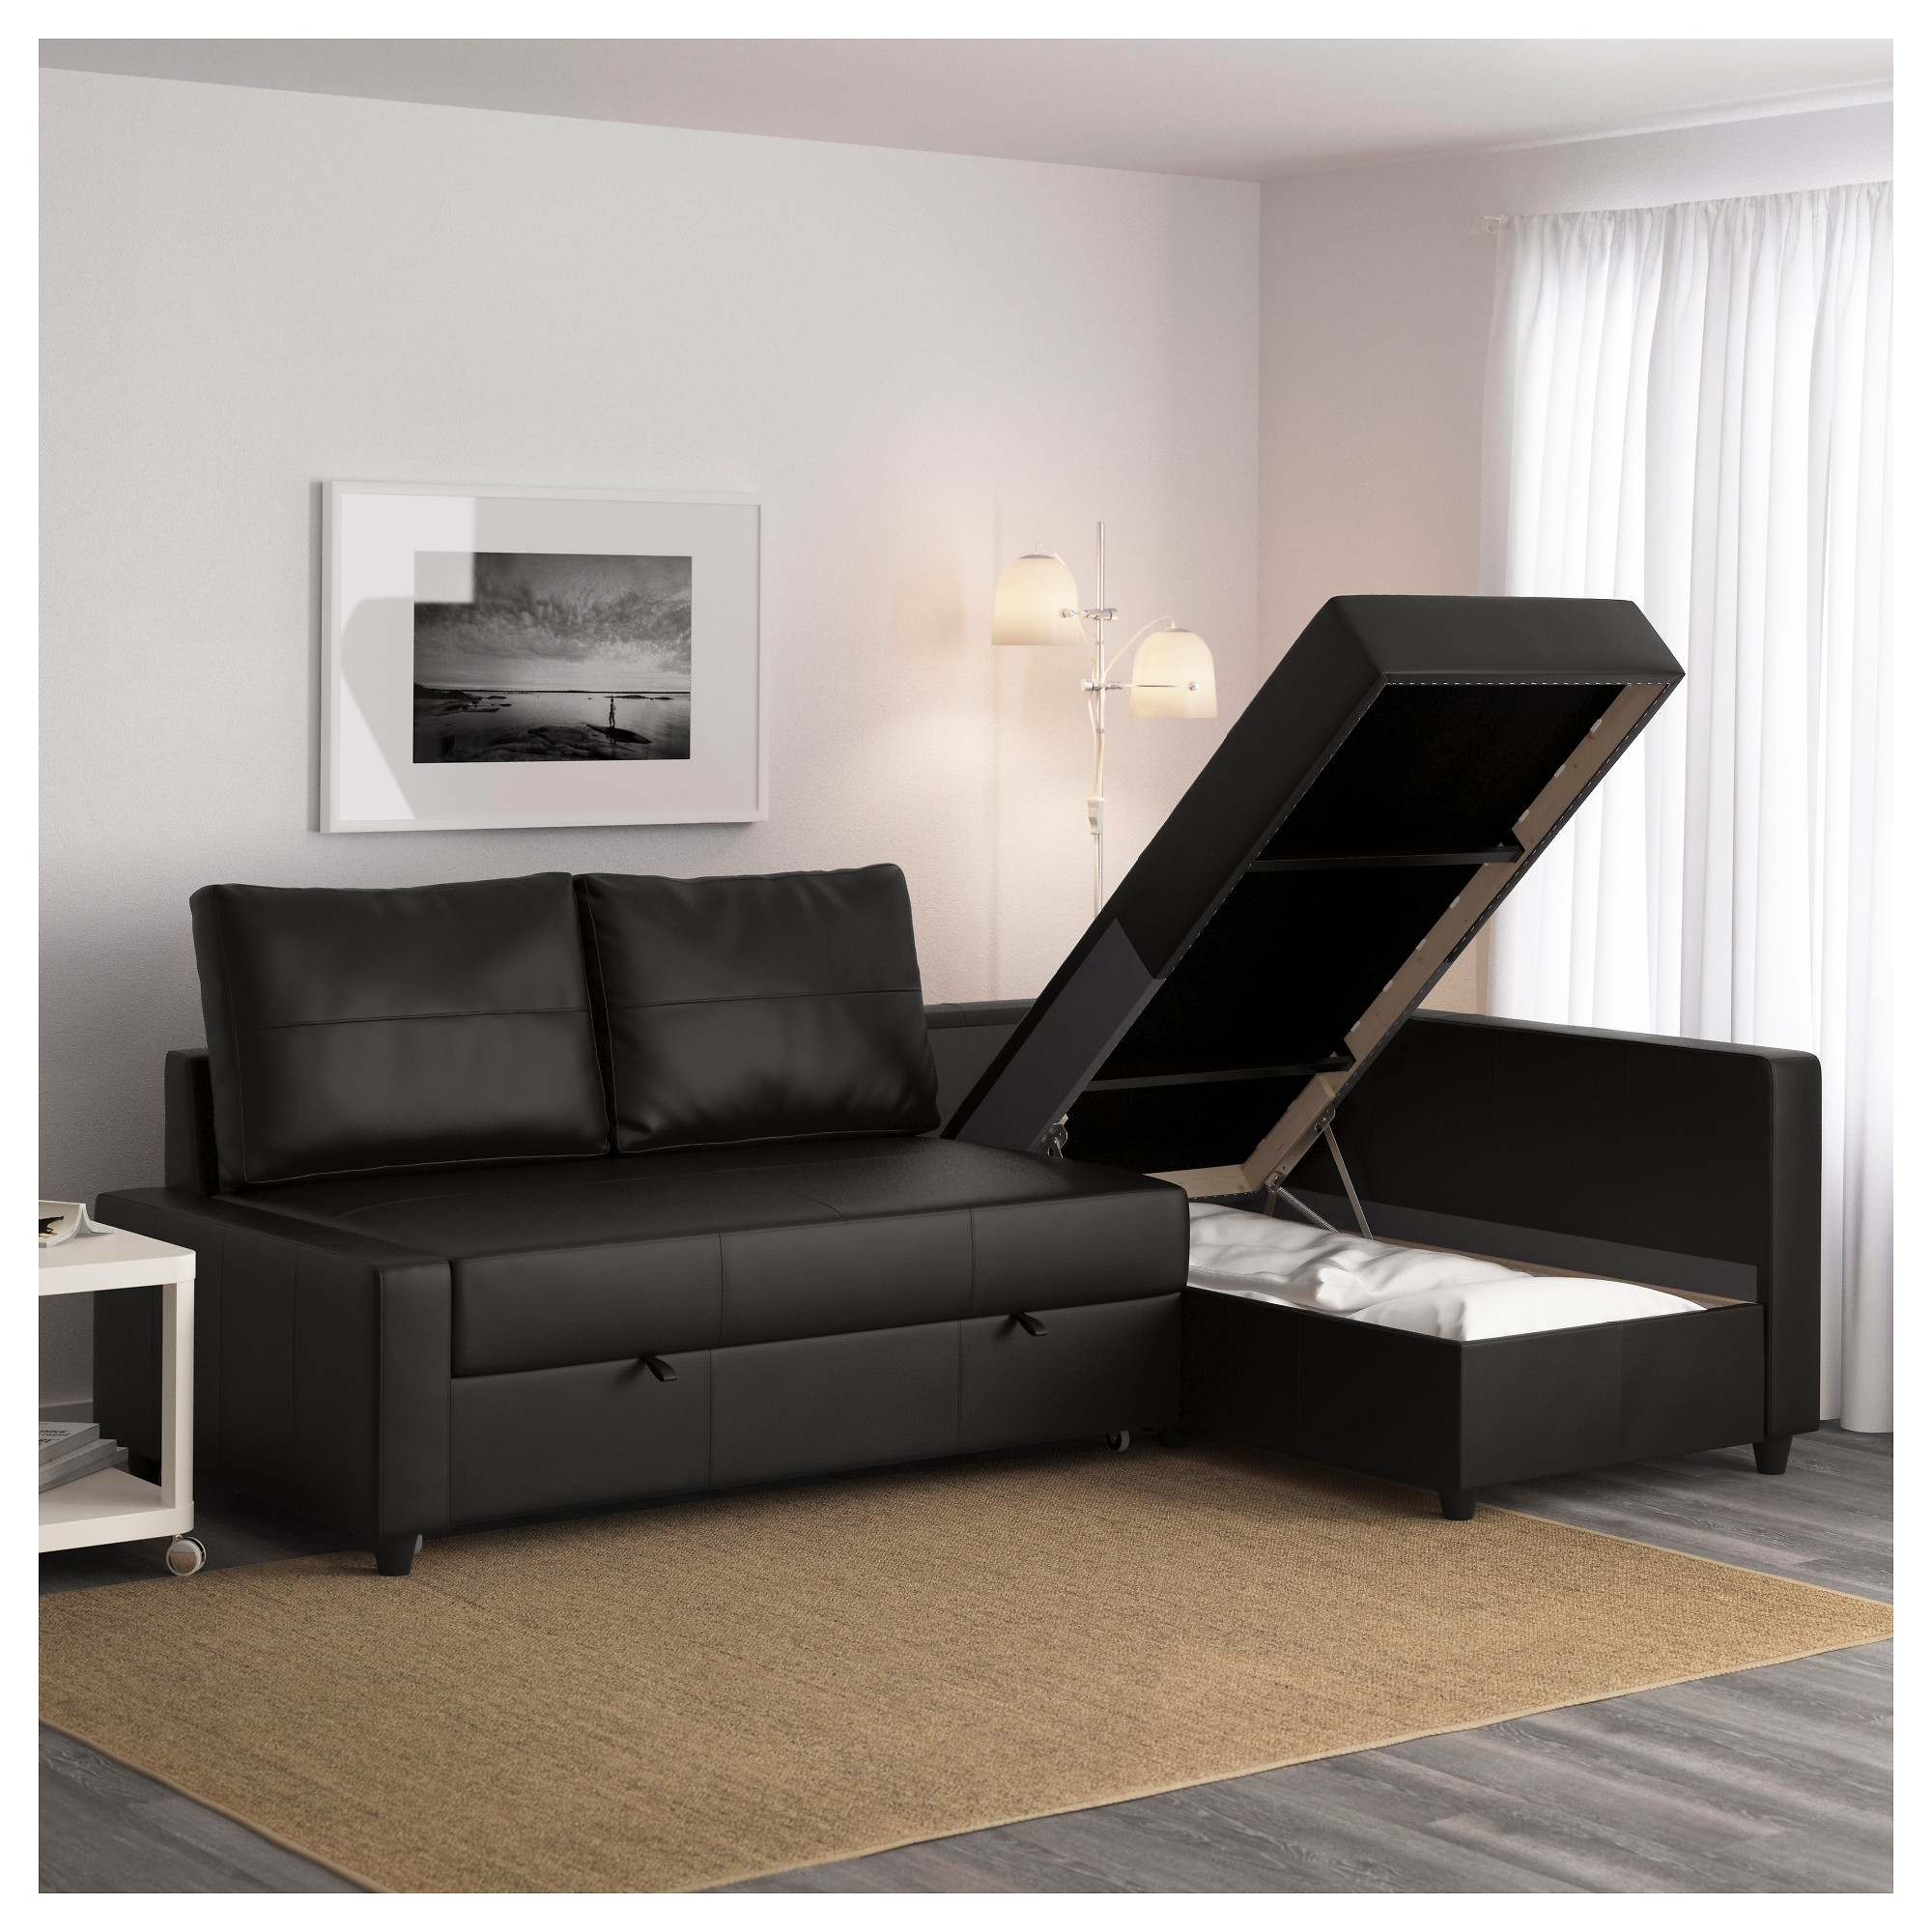 Friheten Sleeper Sectional,3 Seat W/storage – Skiftebo Dark Gray In Most Recent Ikea Chaise Sofas (View 4 of 15)